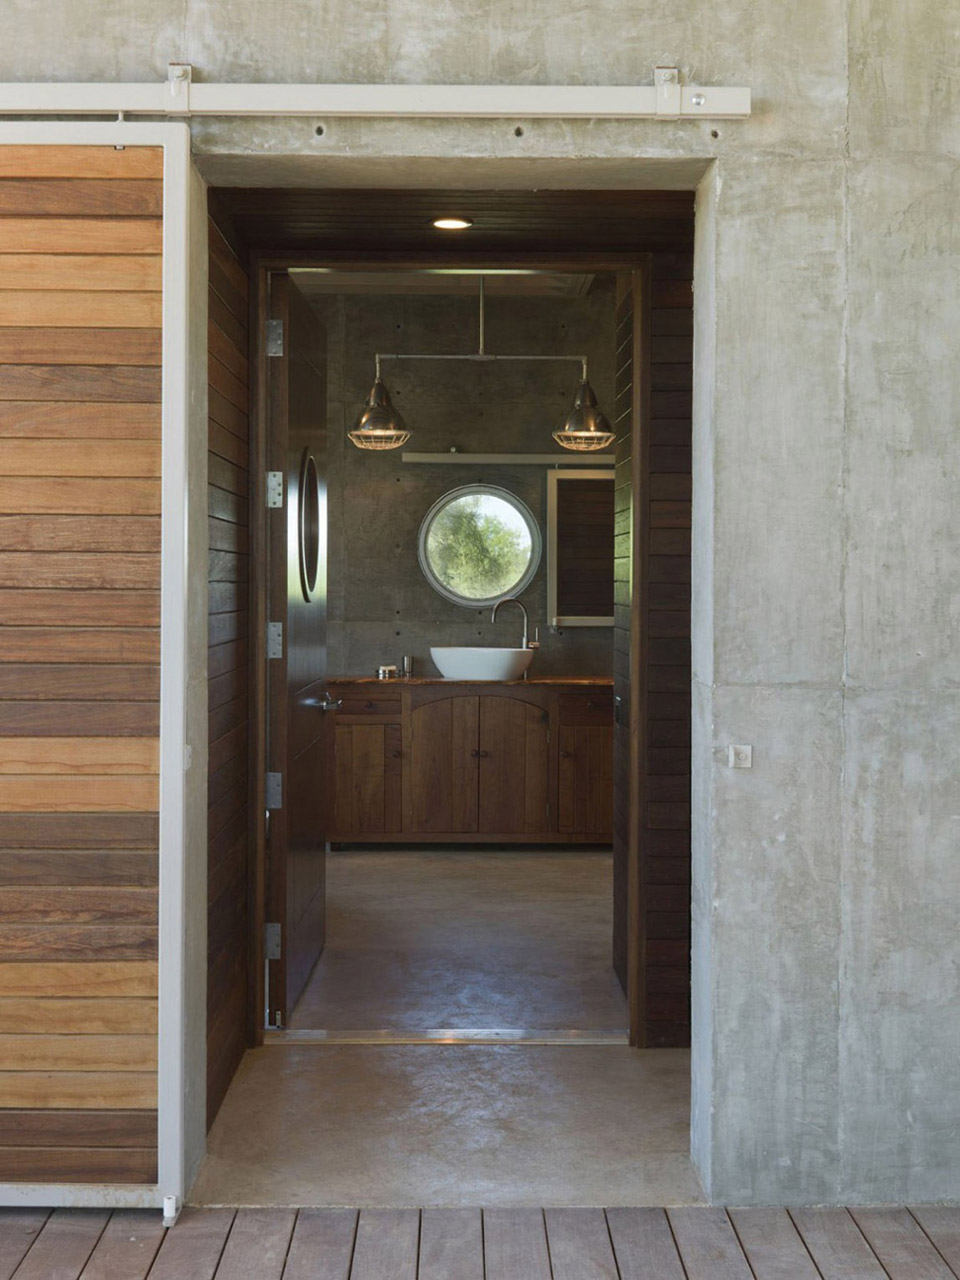 spartan-house-by-andrew-hinman-architecture-8